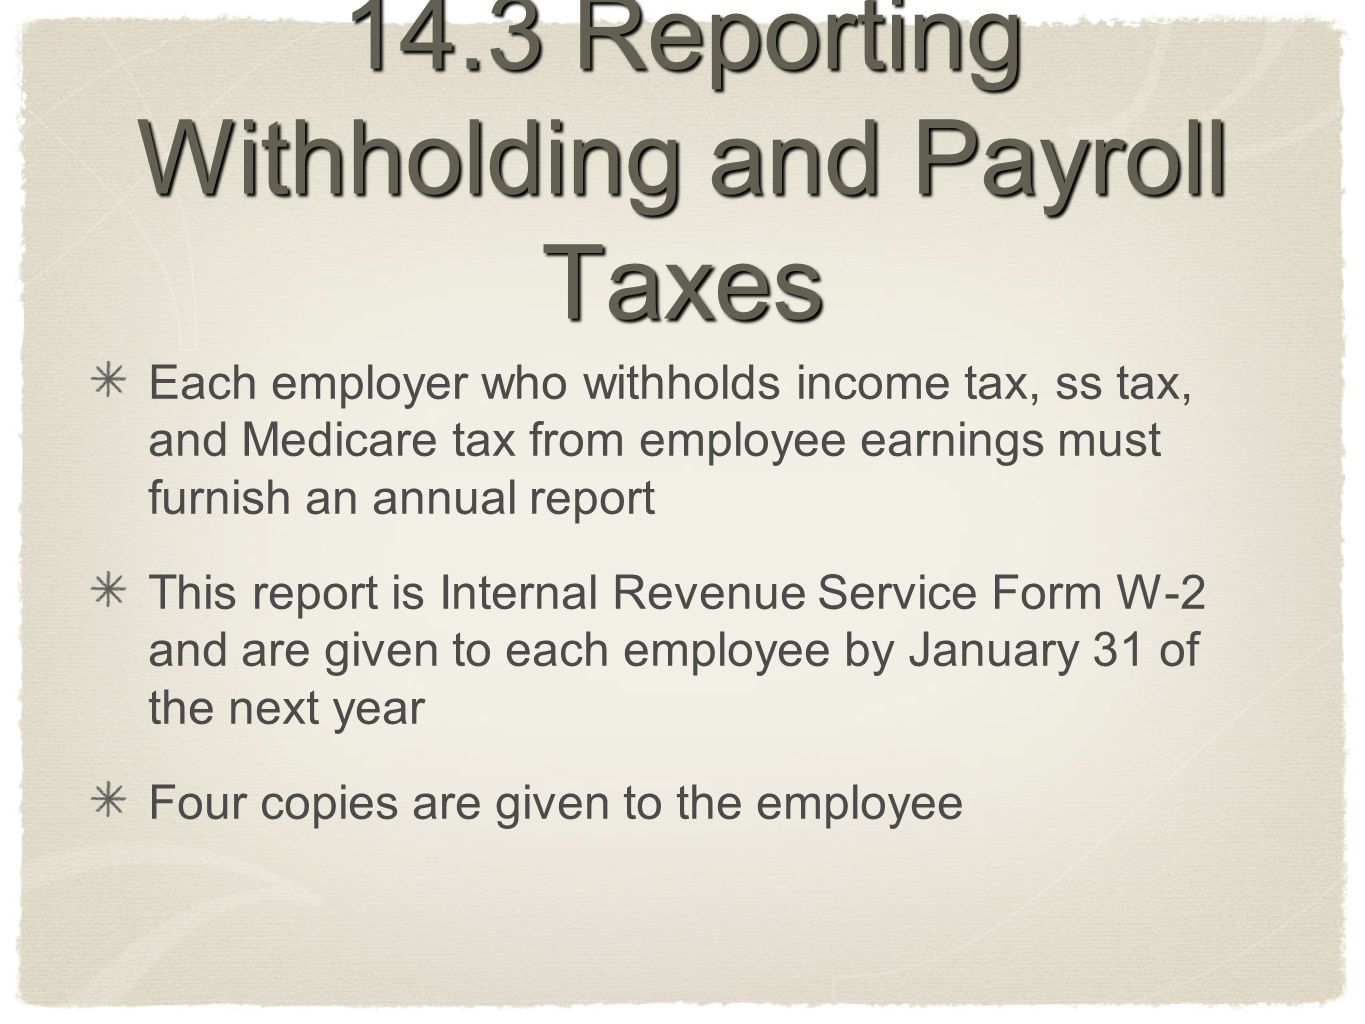 14.3 Reporting Withholding and Payroll Taxes